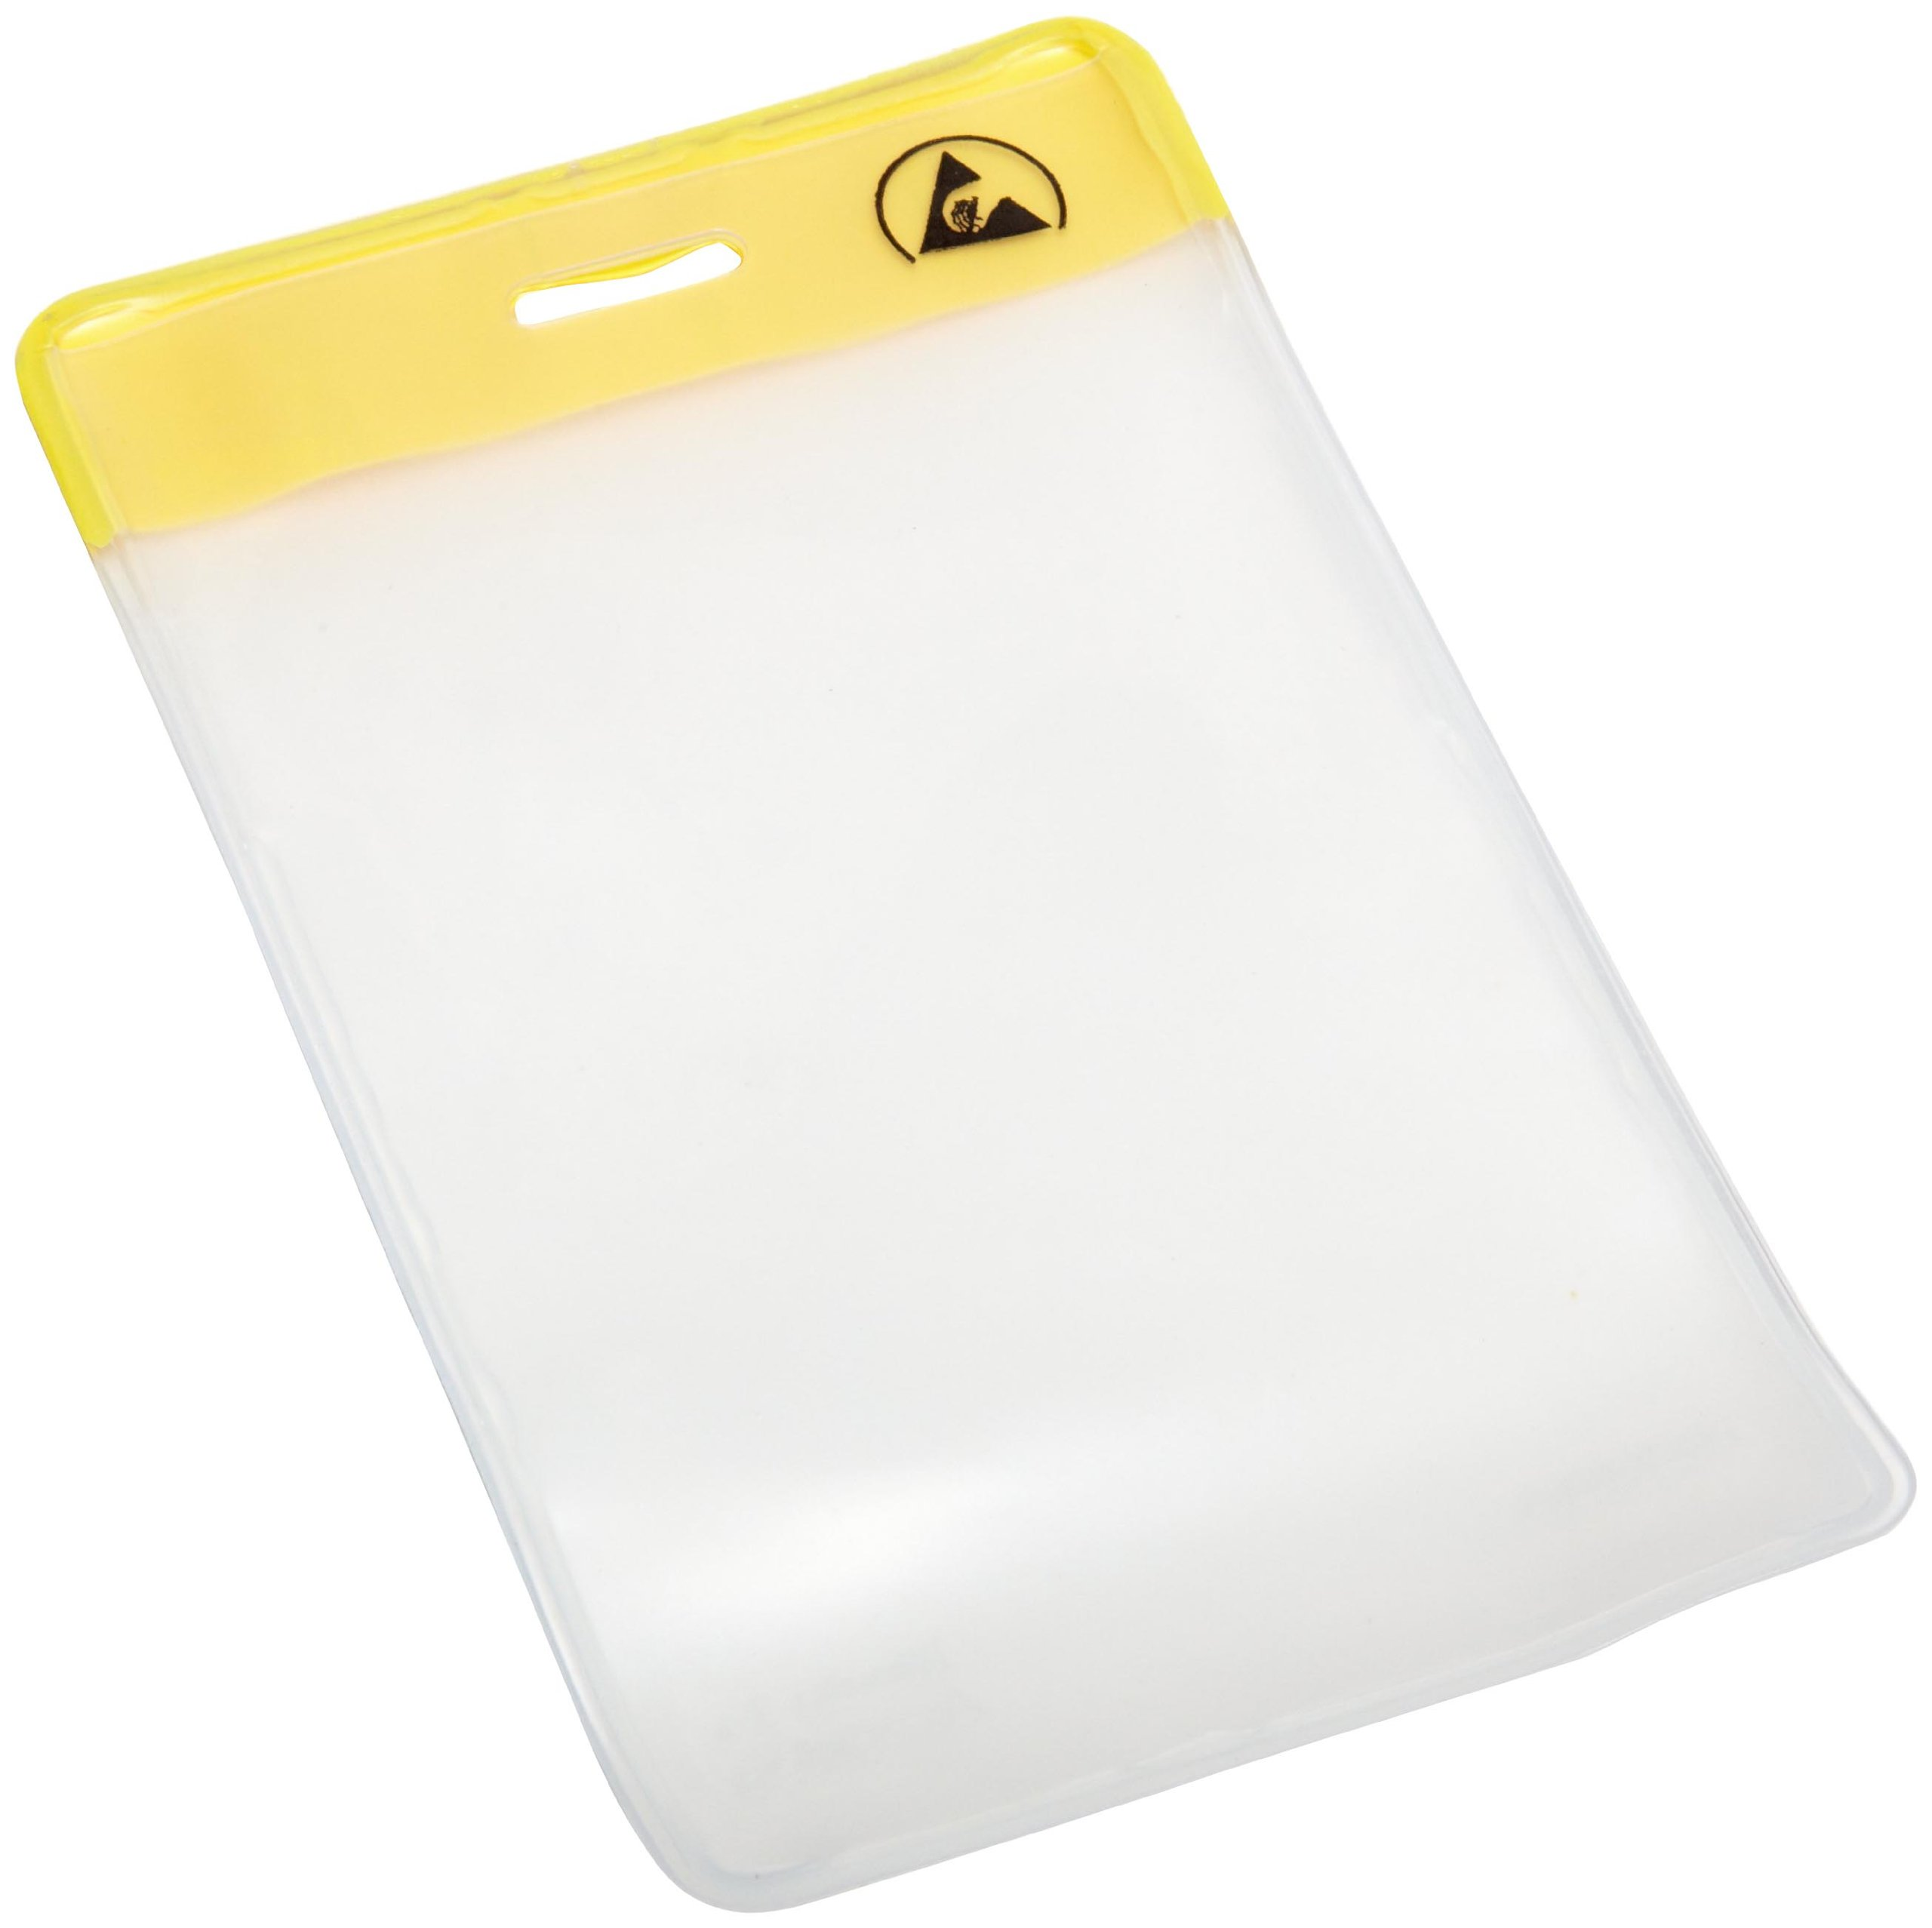 Menda 35014 Yellow Header ESD Safe Vertical Proximity Card Holder, 4-3/8'' Outer Length x 2-11/16'' Outer Width, 3-3/8'' Insert Length x 2-1/8'' Insert Width (Pack of 50)